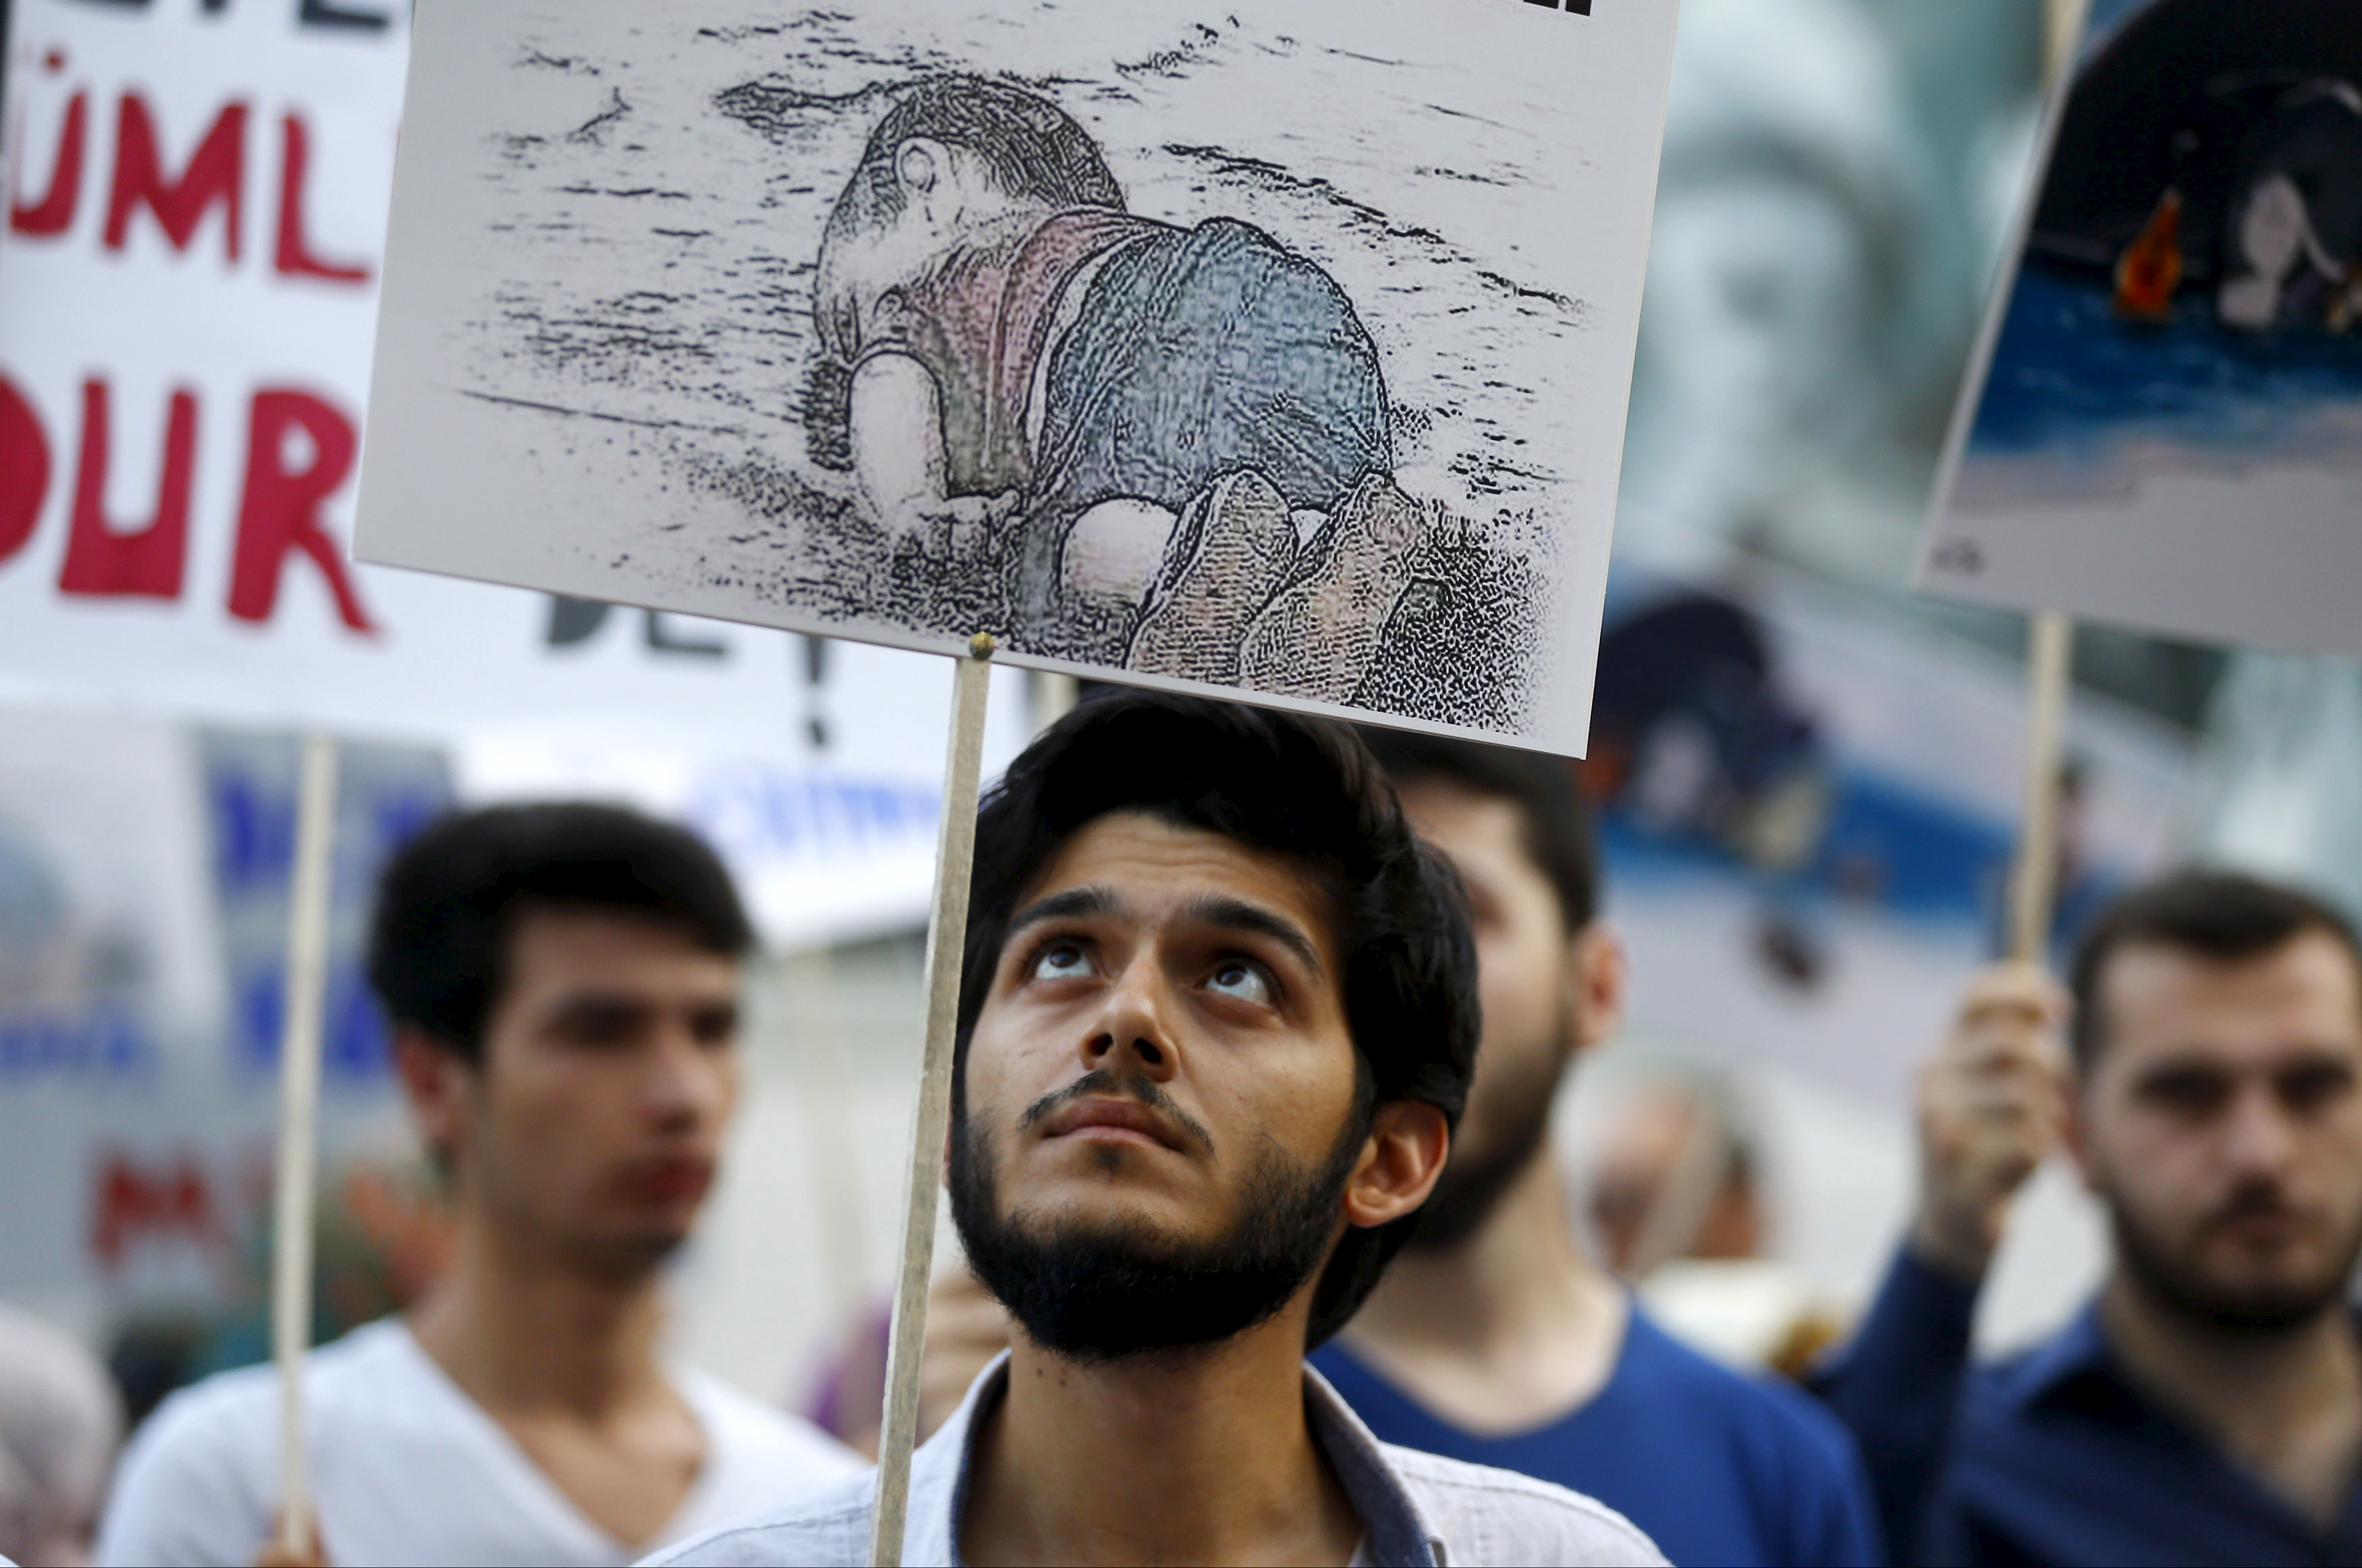 A man holds a poster with a drawing depicting a drowned Syrian toddler during a demonstration for refugee rights in Istanbul